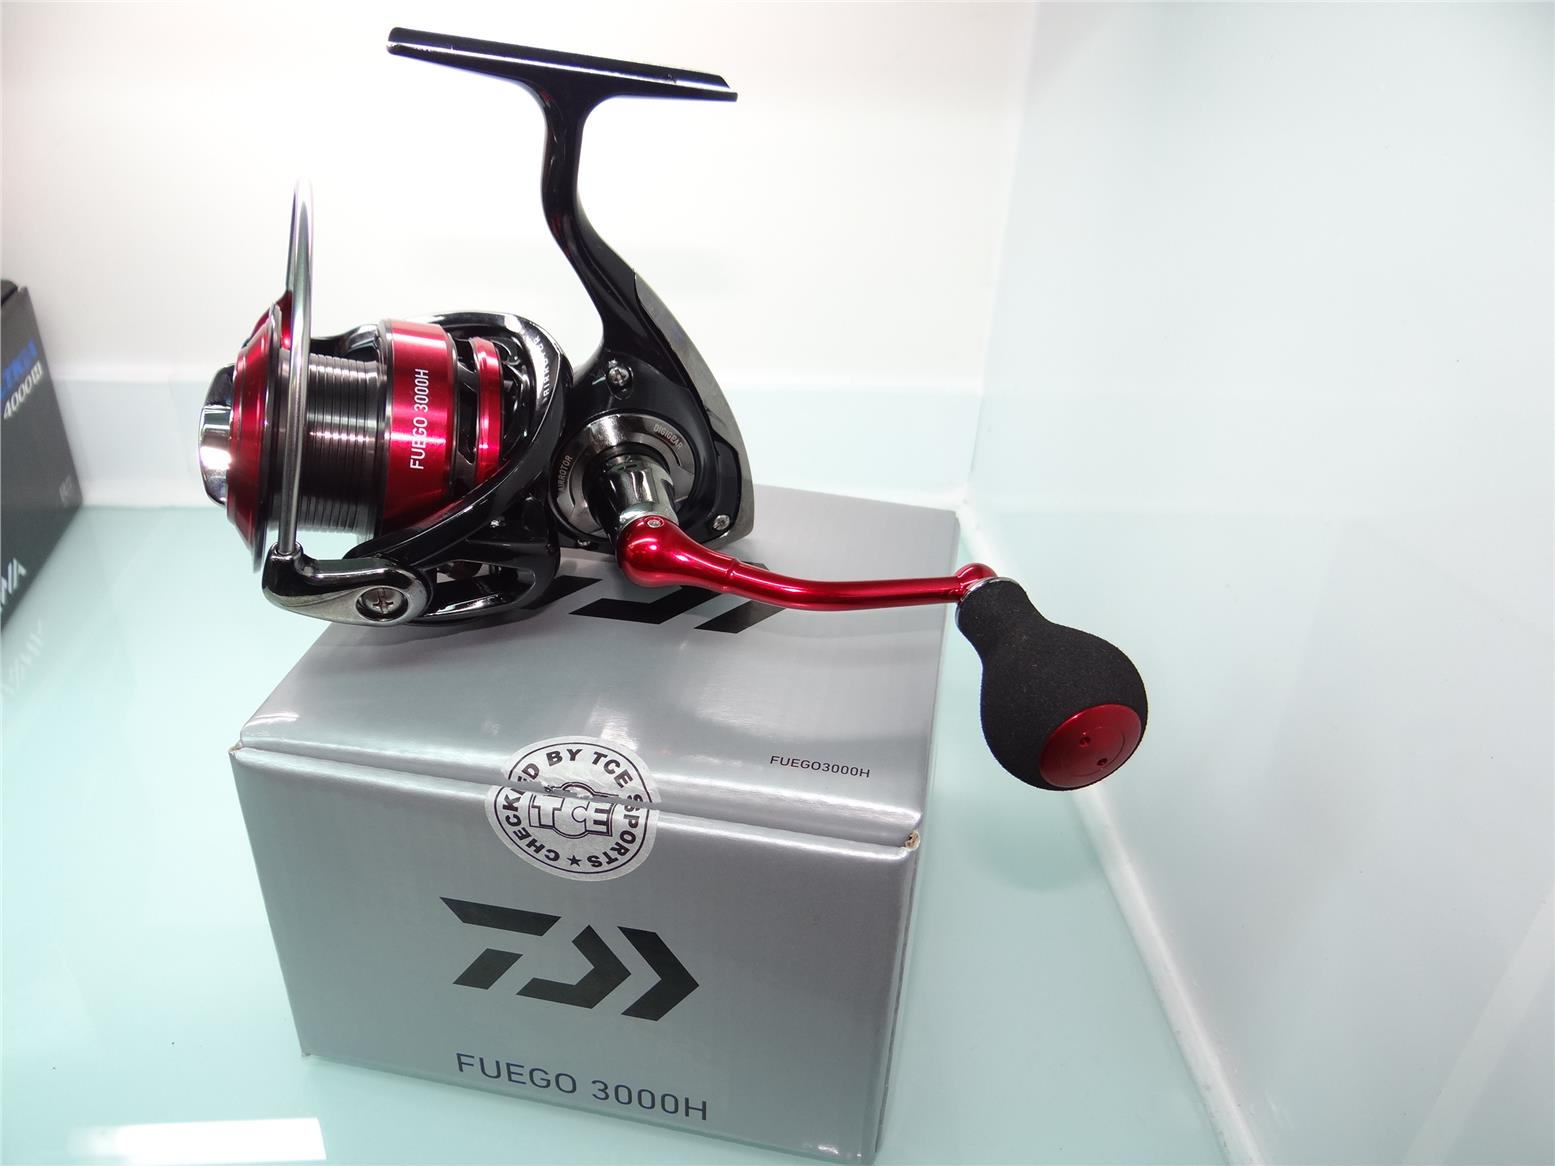 Daiwa Fuego 3000H fishing reel